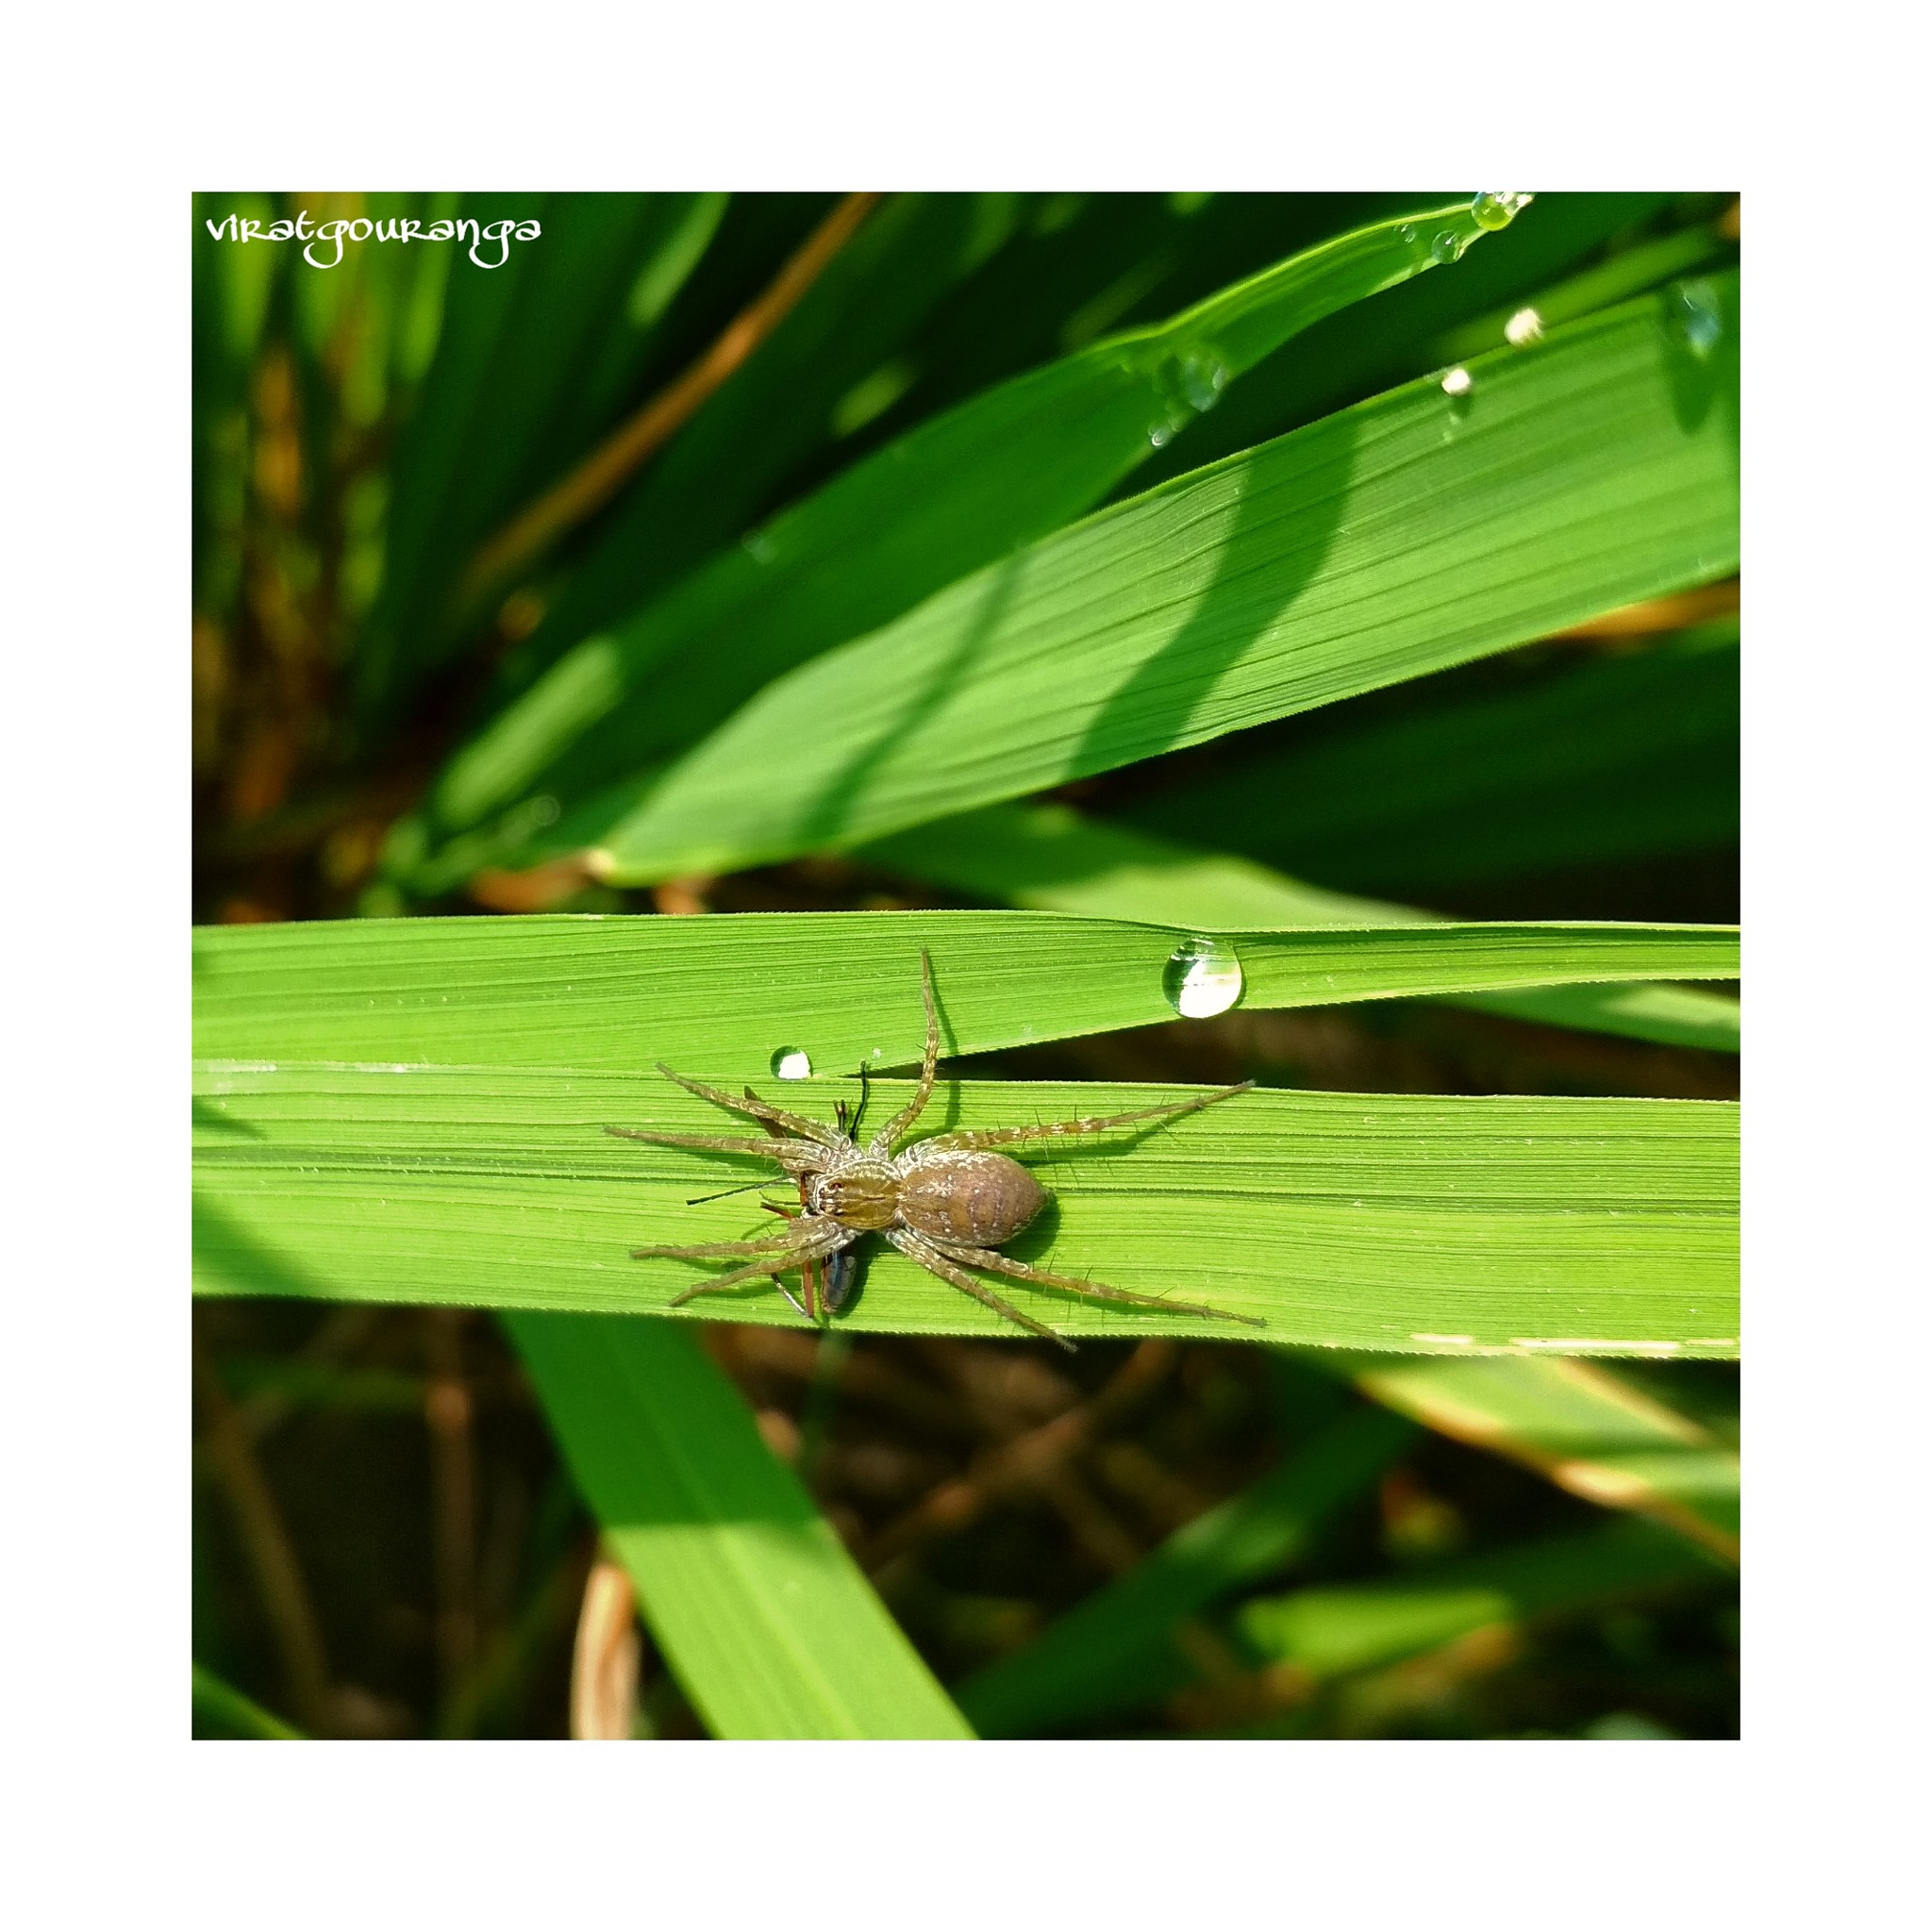 Spider eating by Gouranga Ghosh